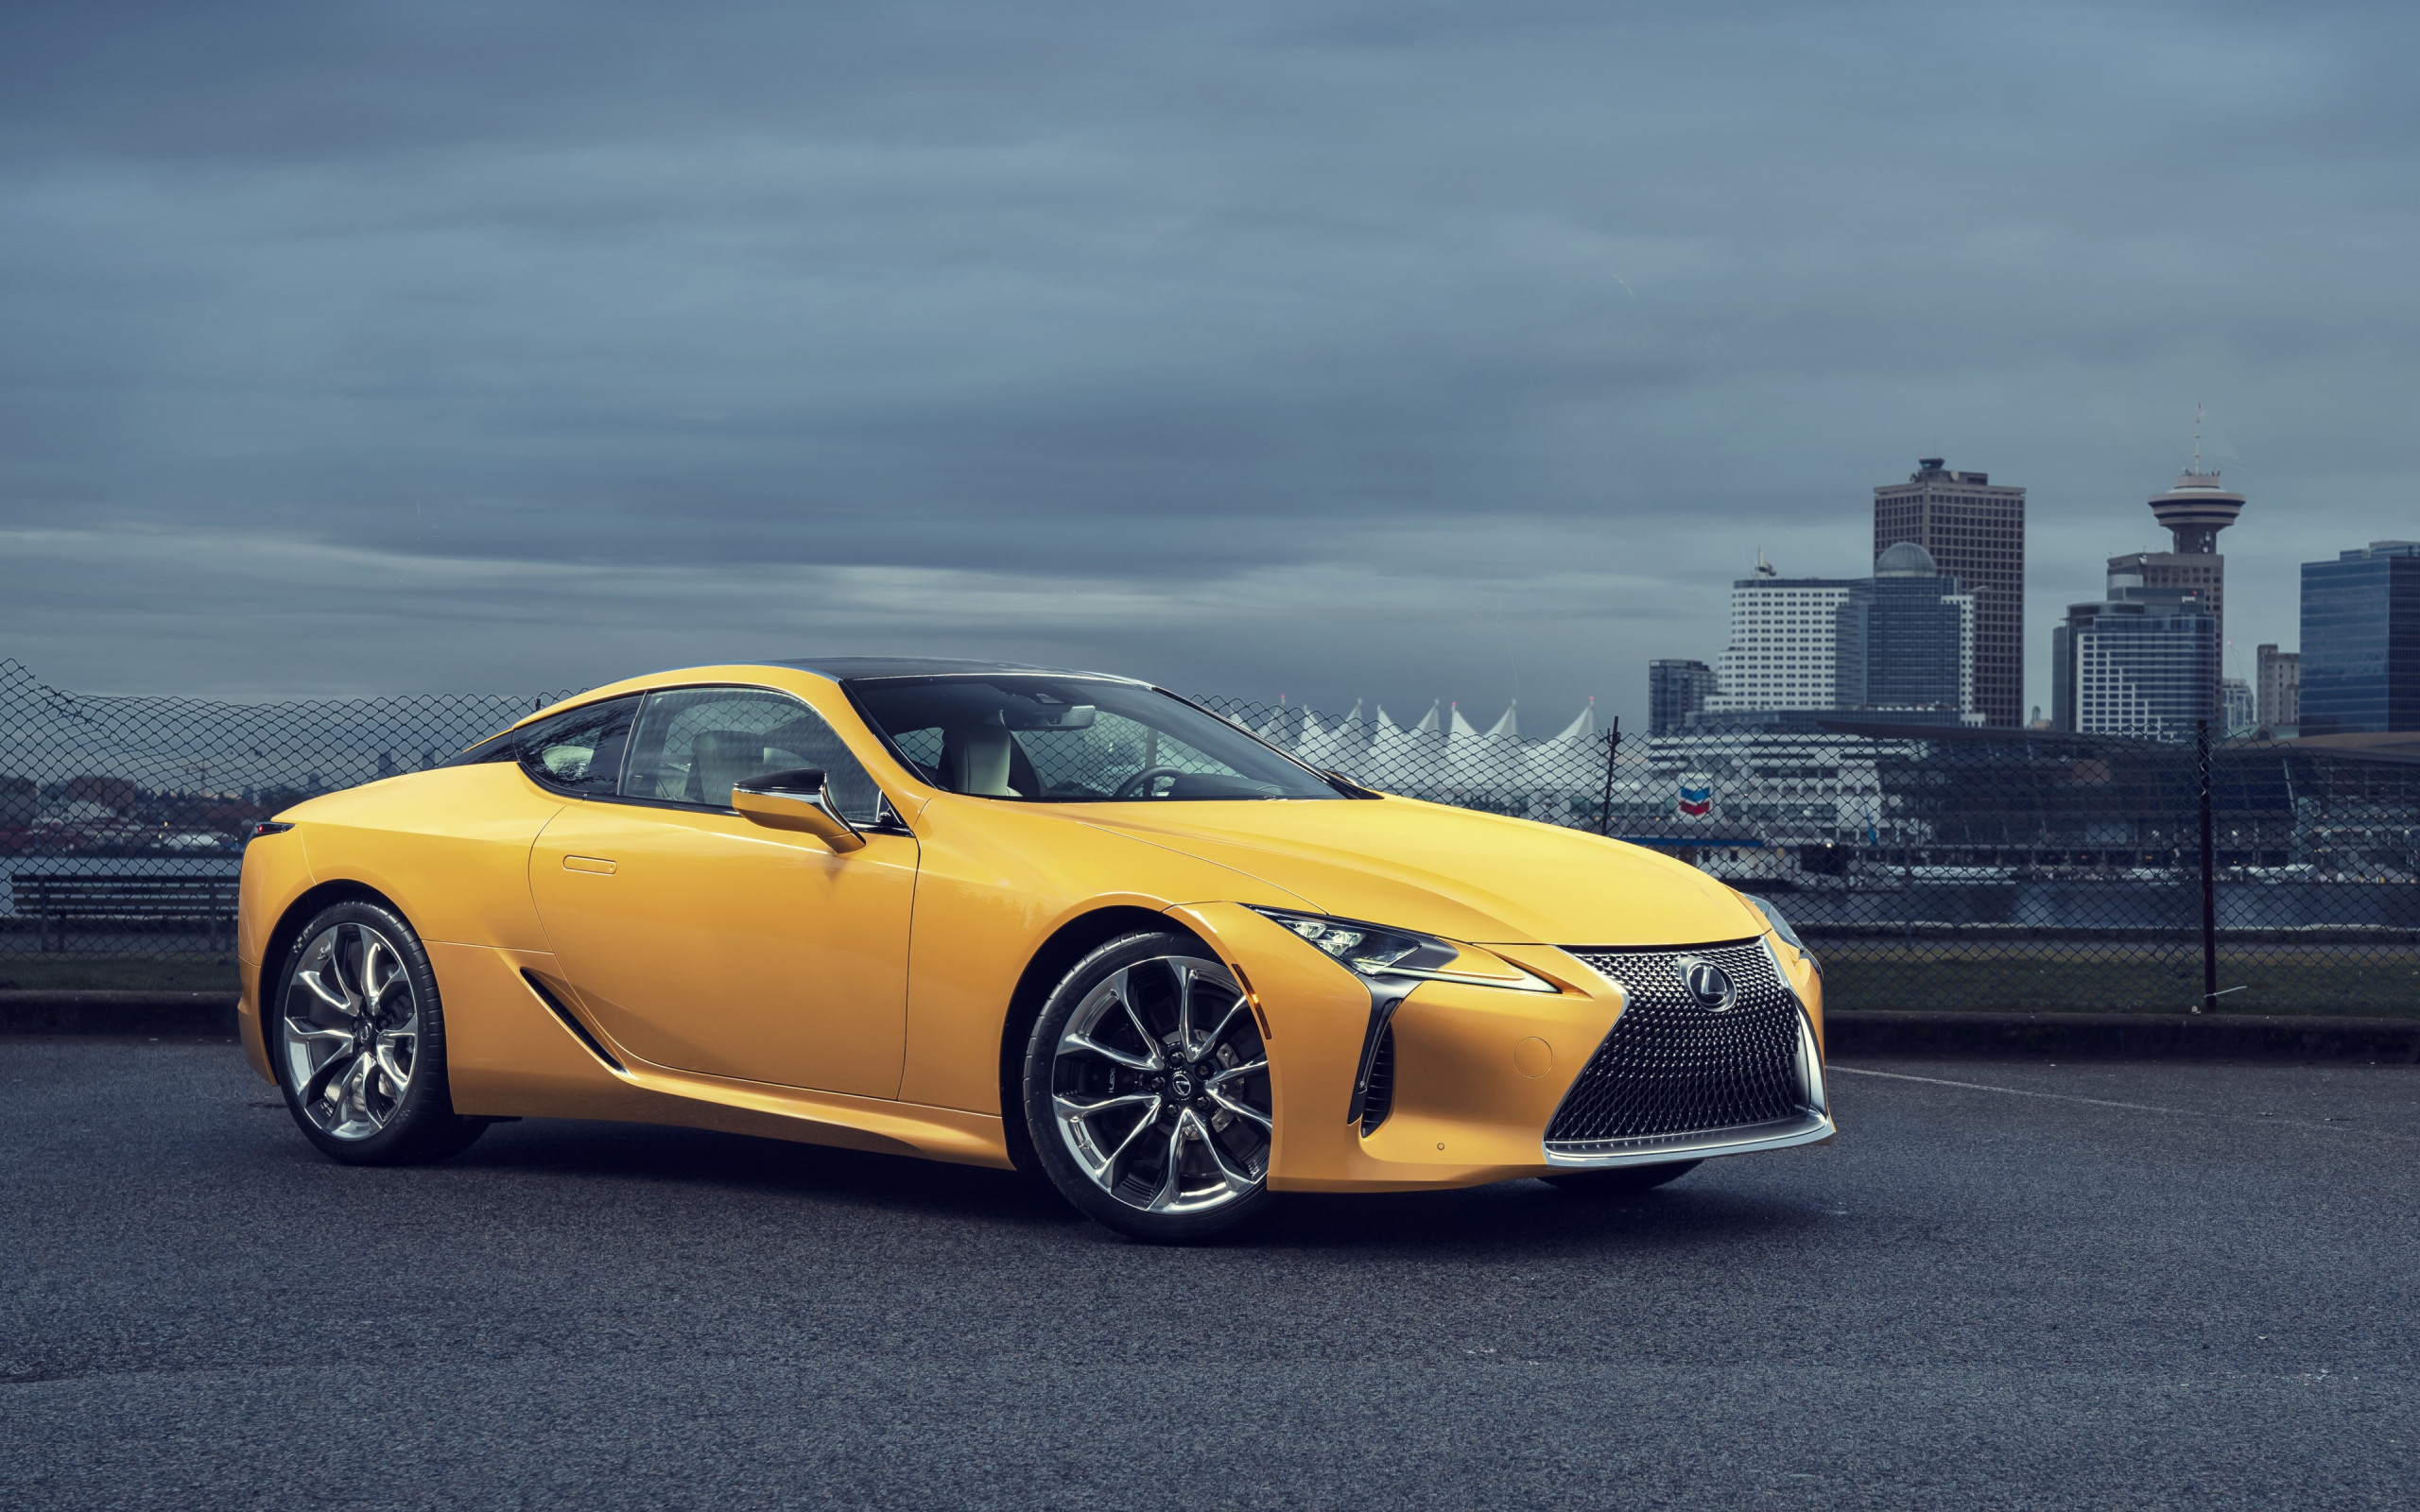 Lexus LC 500 Inspiration Series wallpaper 2560x1600